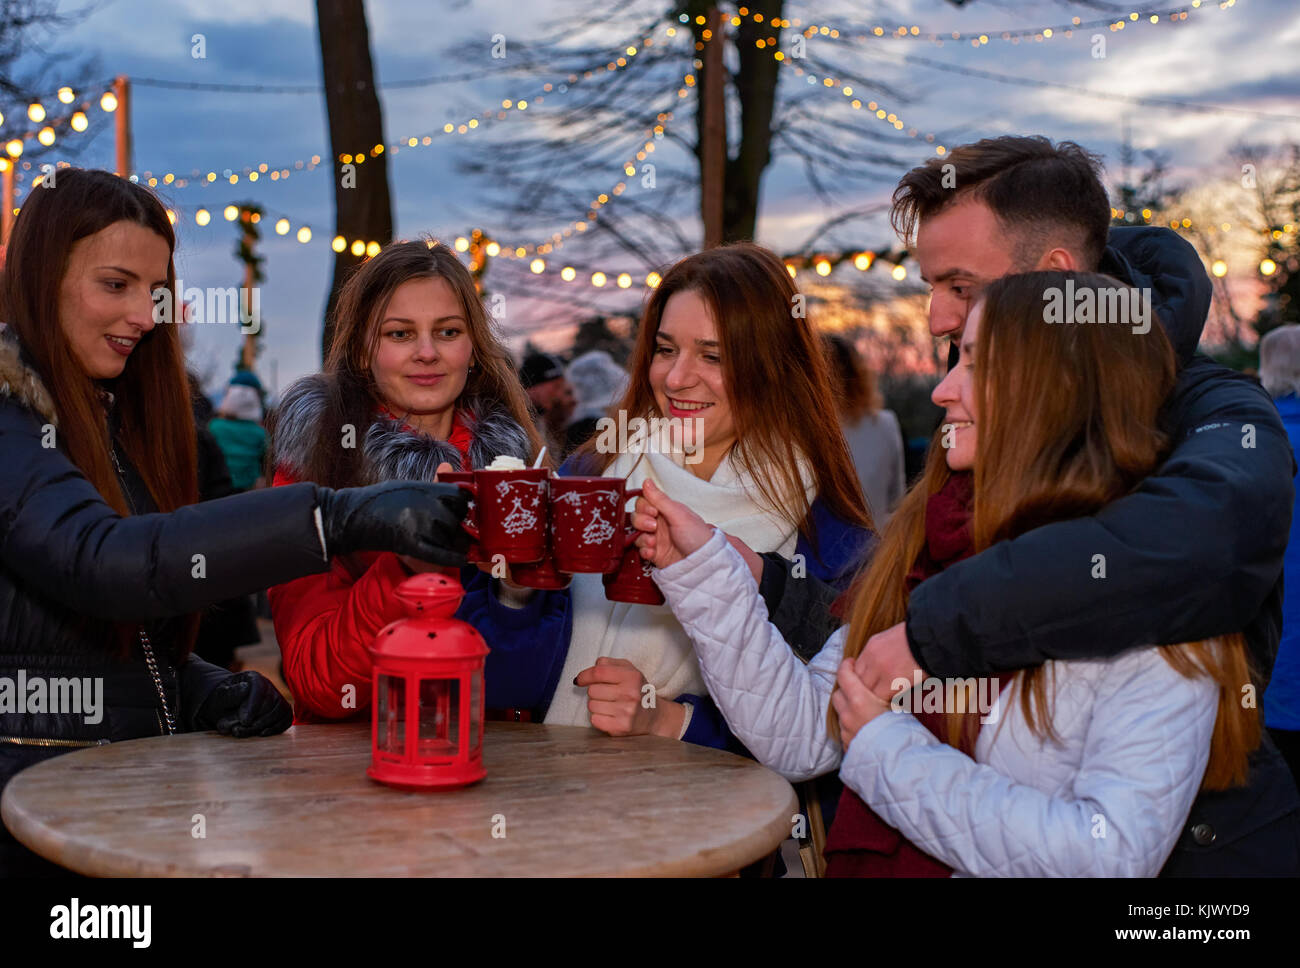 Five young people drinking mulled wine at Christmas market - Stock Image